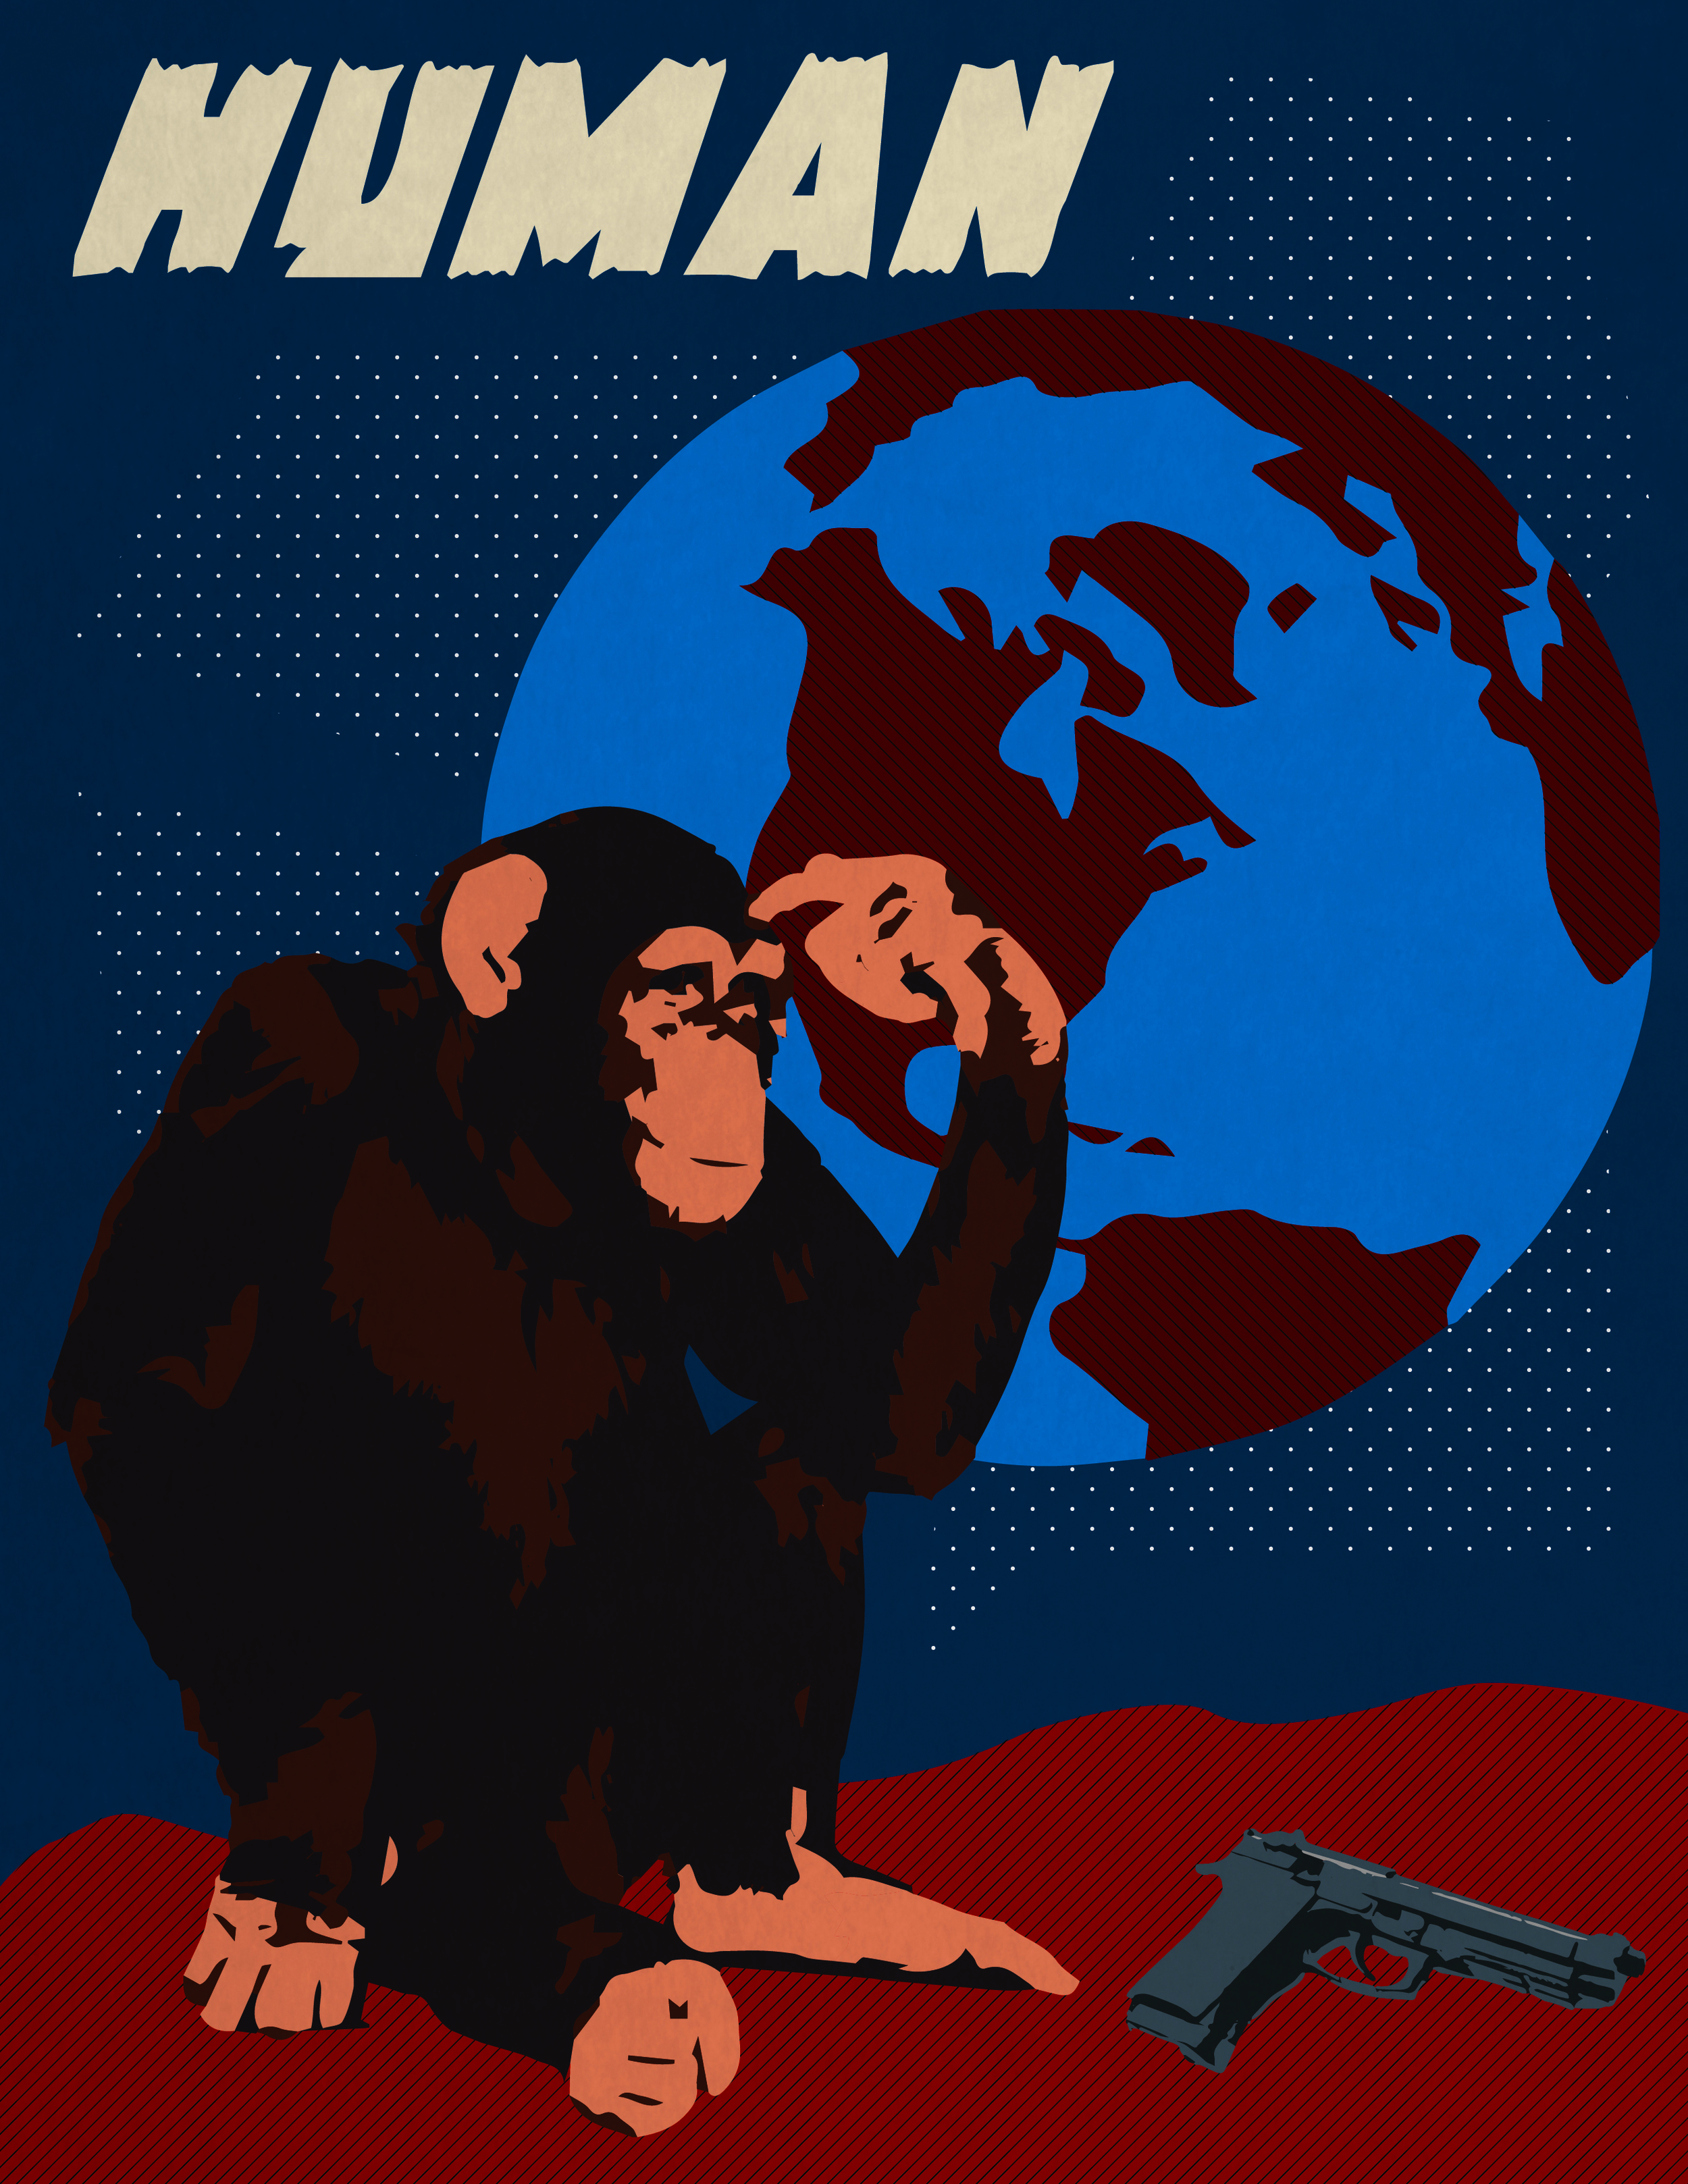 Monkeys with guns, 2012.  Constructivist inspired style.